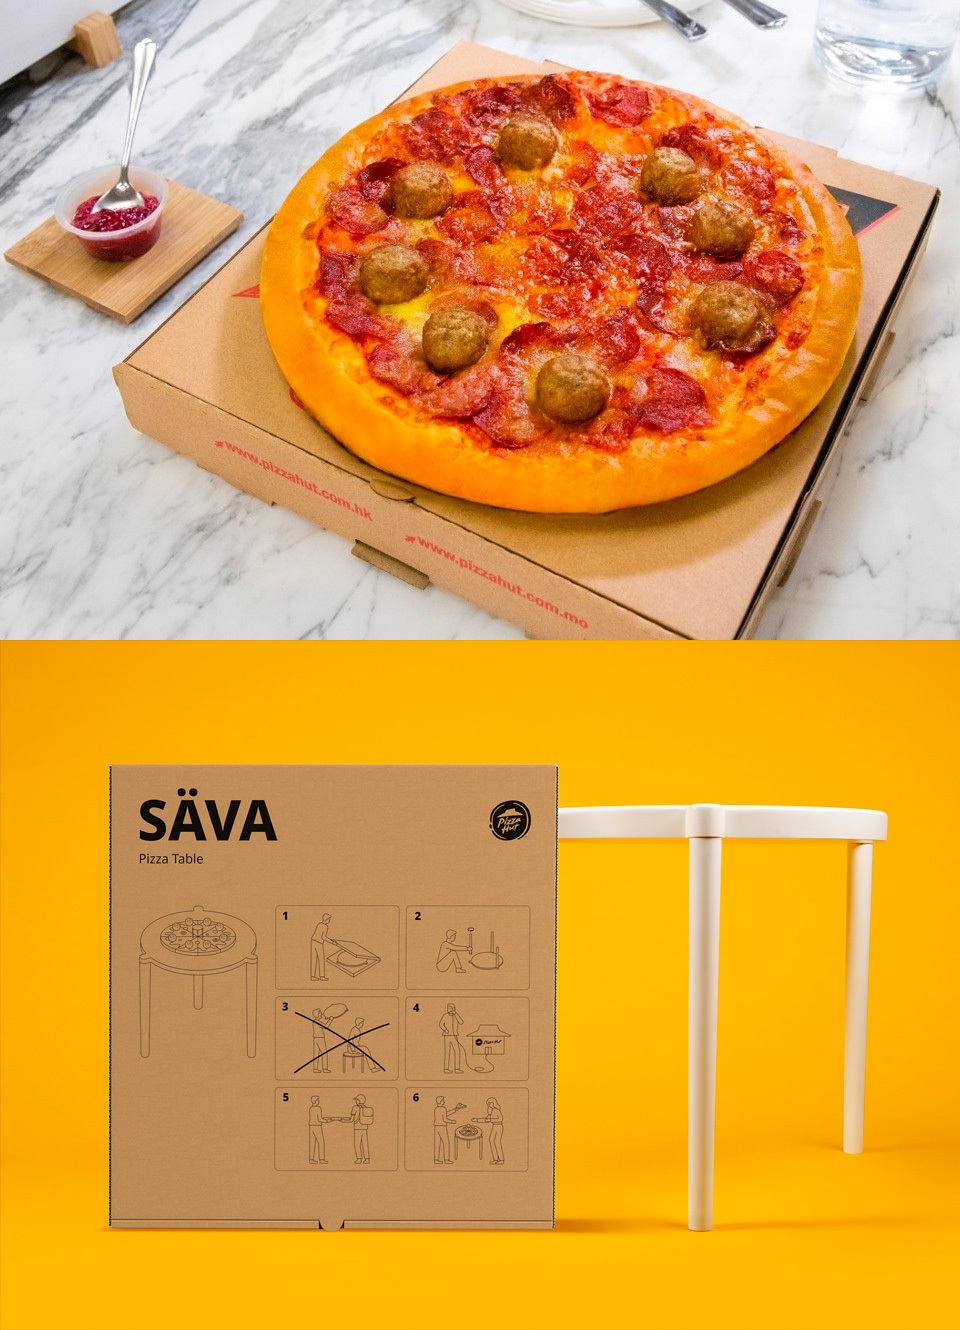 IKEA & Pizza Hut Come to the Table